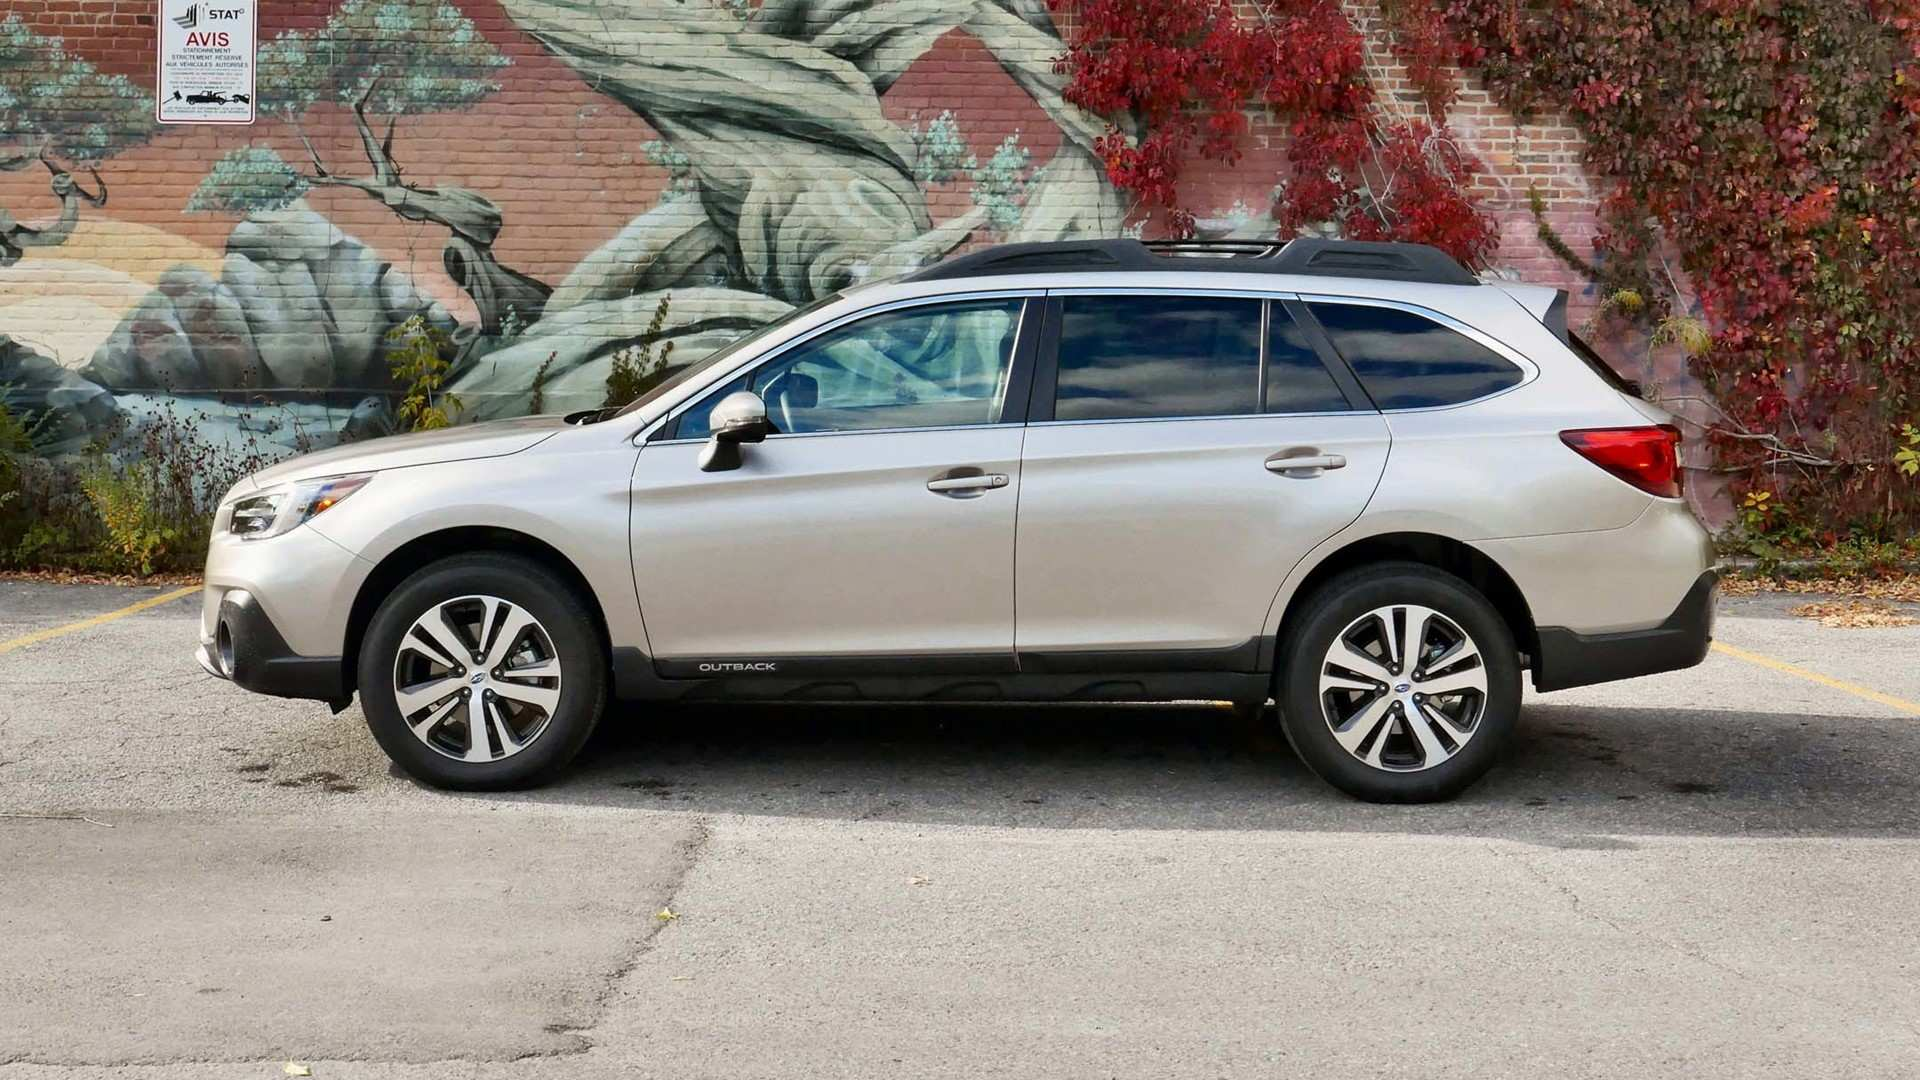 61 All New 2019 Subaru Outback Next Generation Pricing